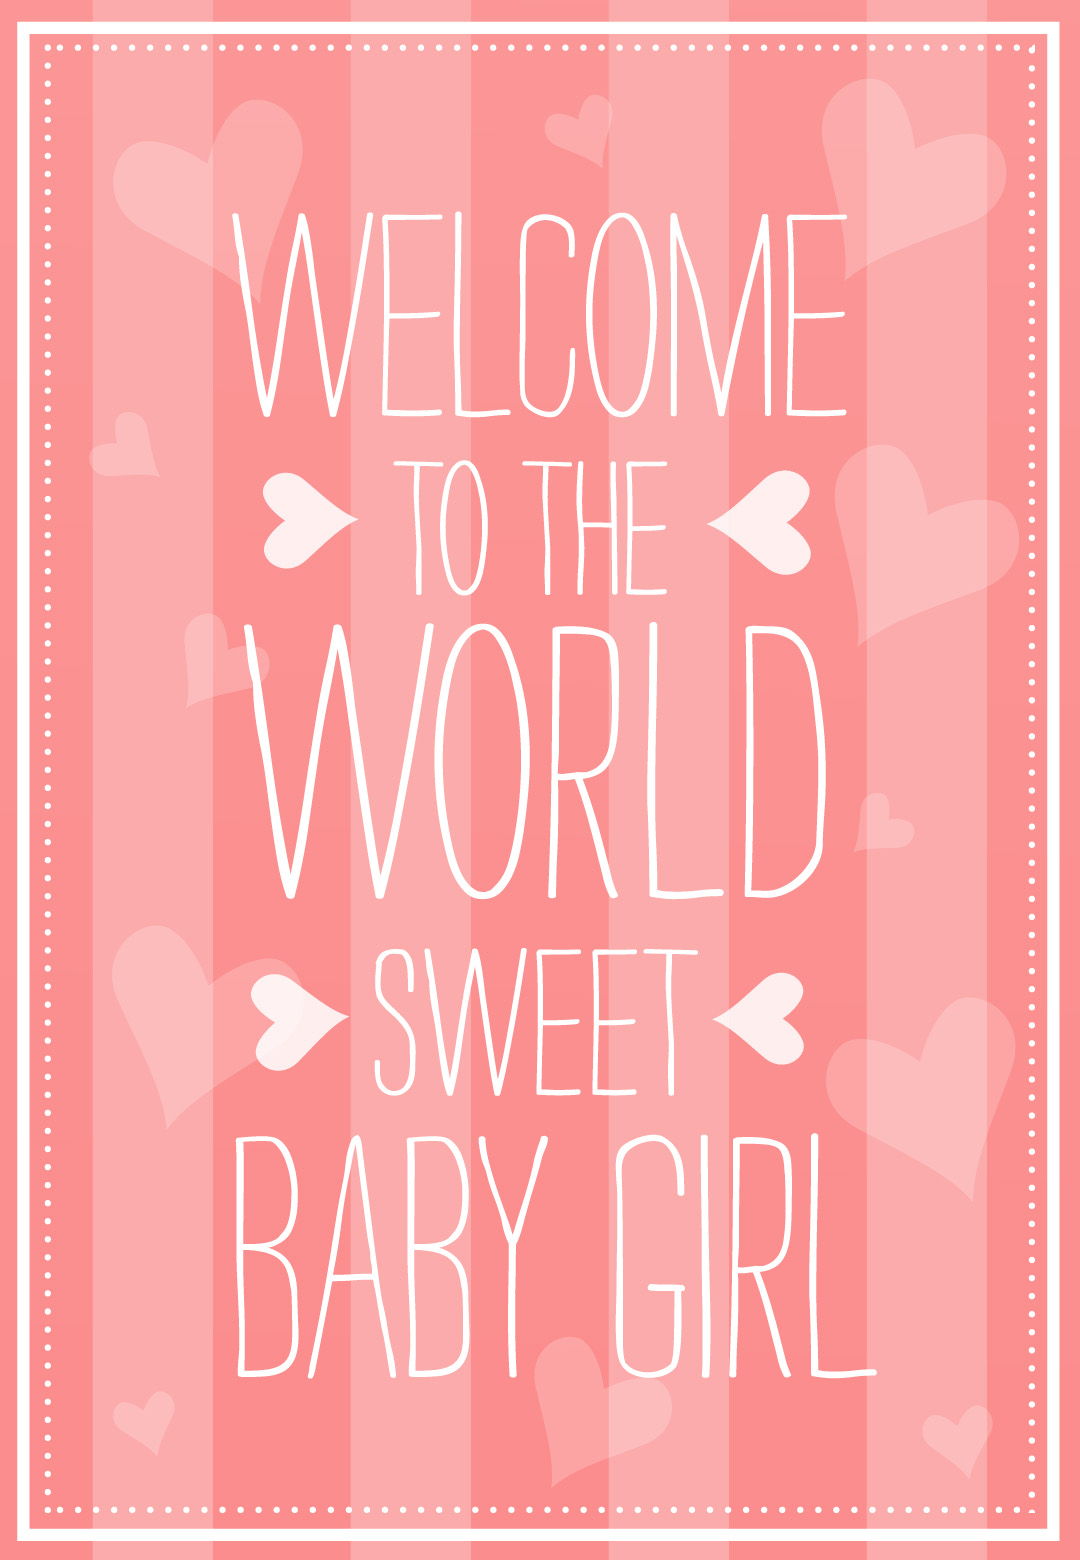 Welcome To The World - Free Baby Shower & New Baby Card   Greetings - Free Printable Welcome Cards